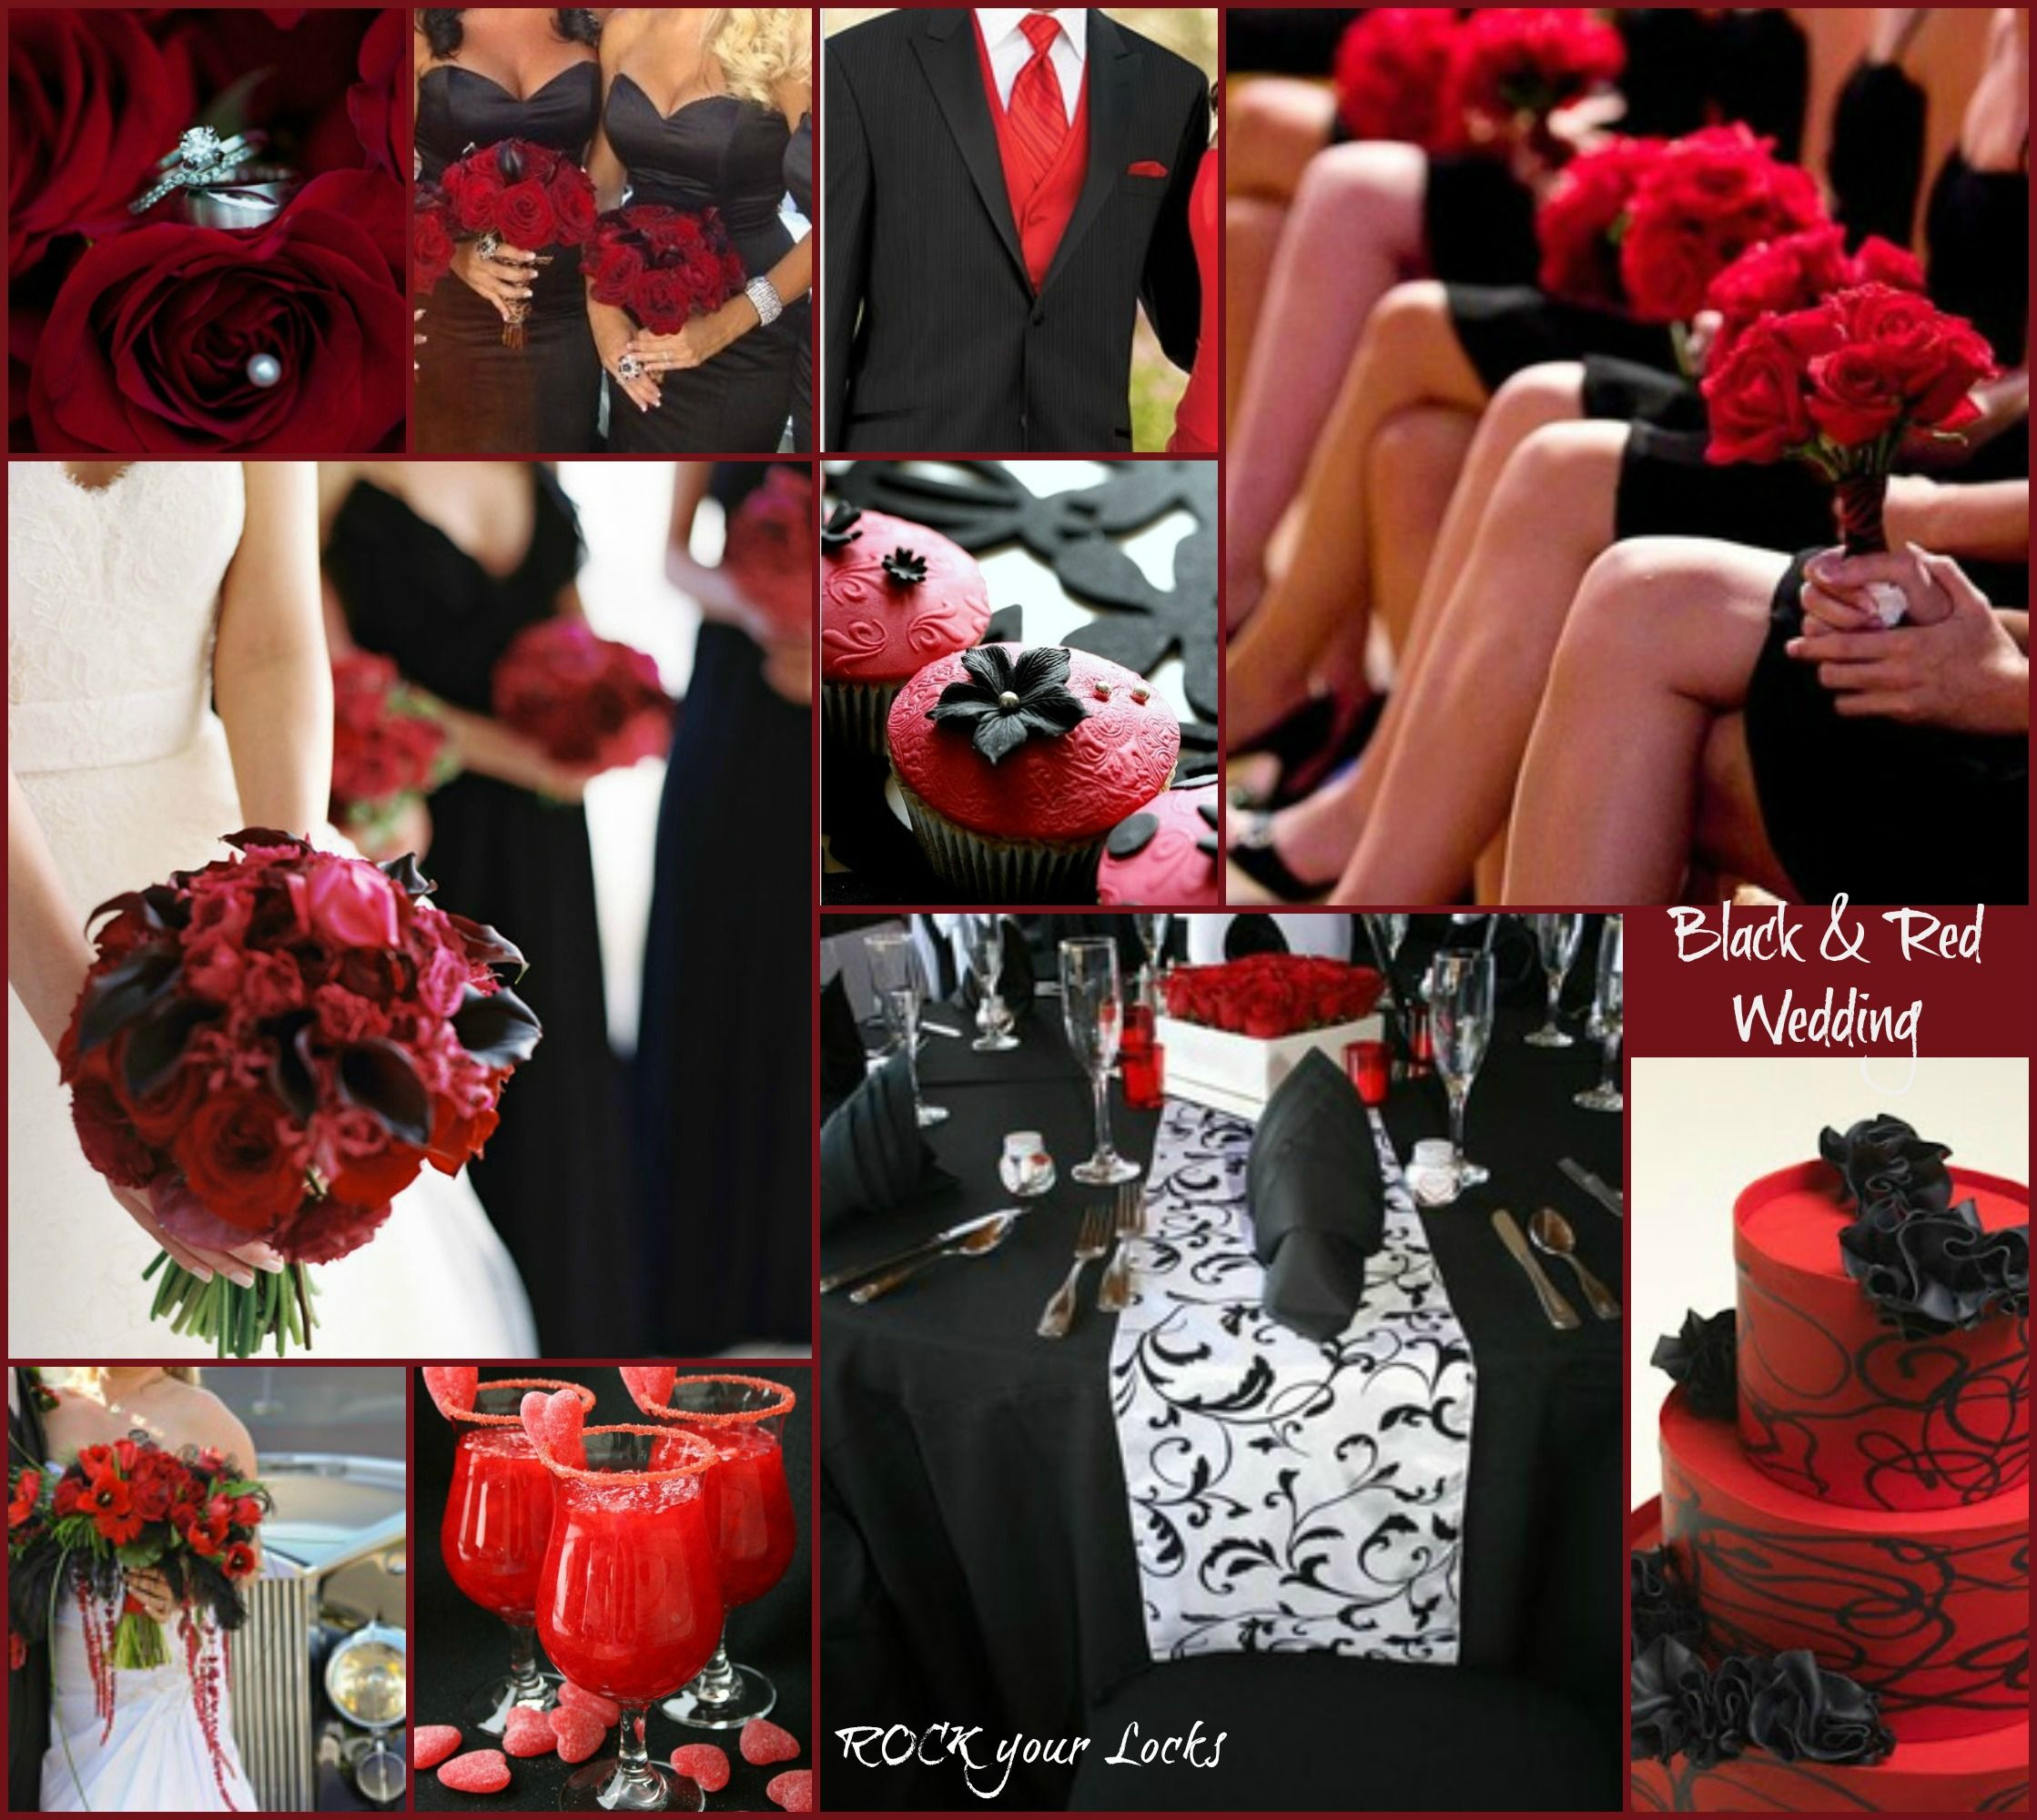 Red And Black Wedding Theme Https://www.facebook.com/photo